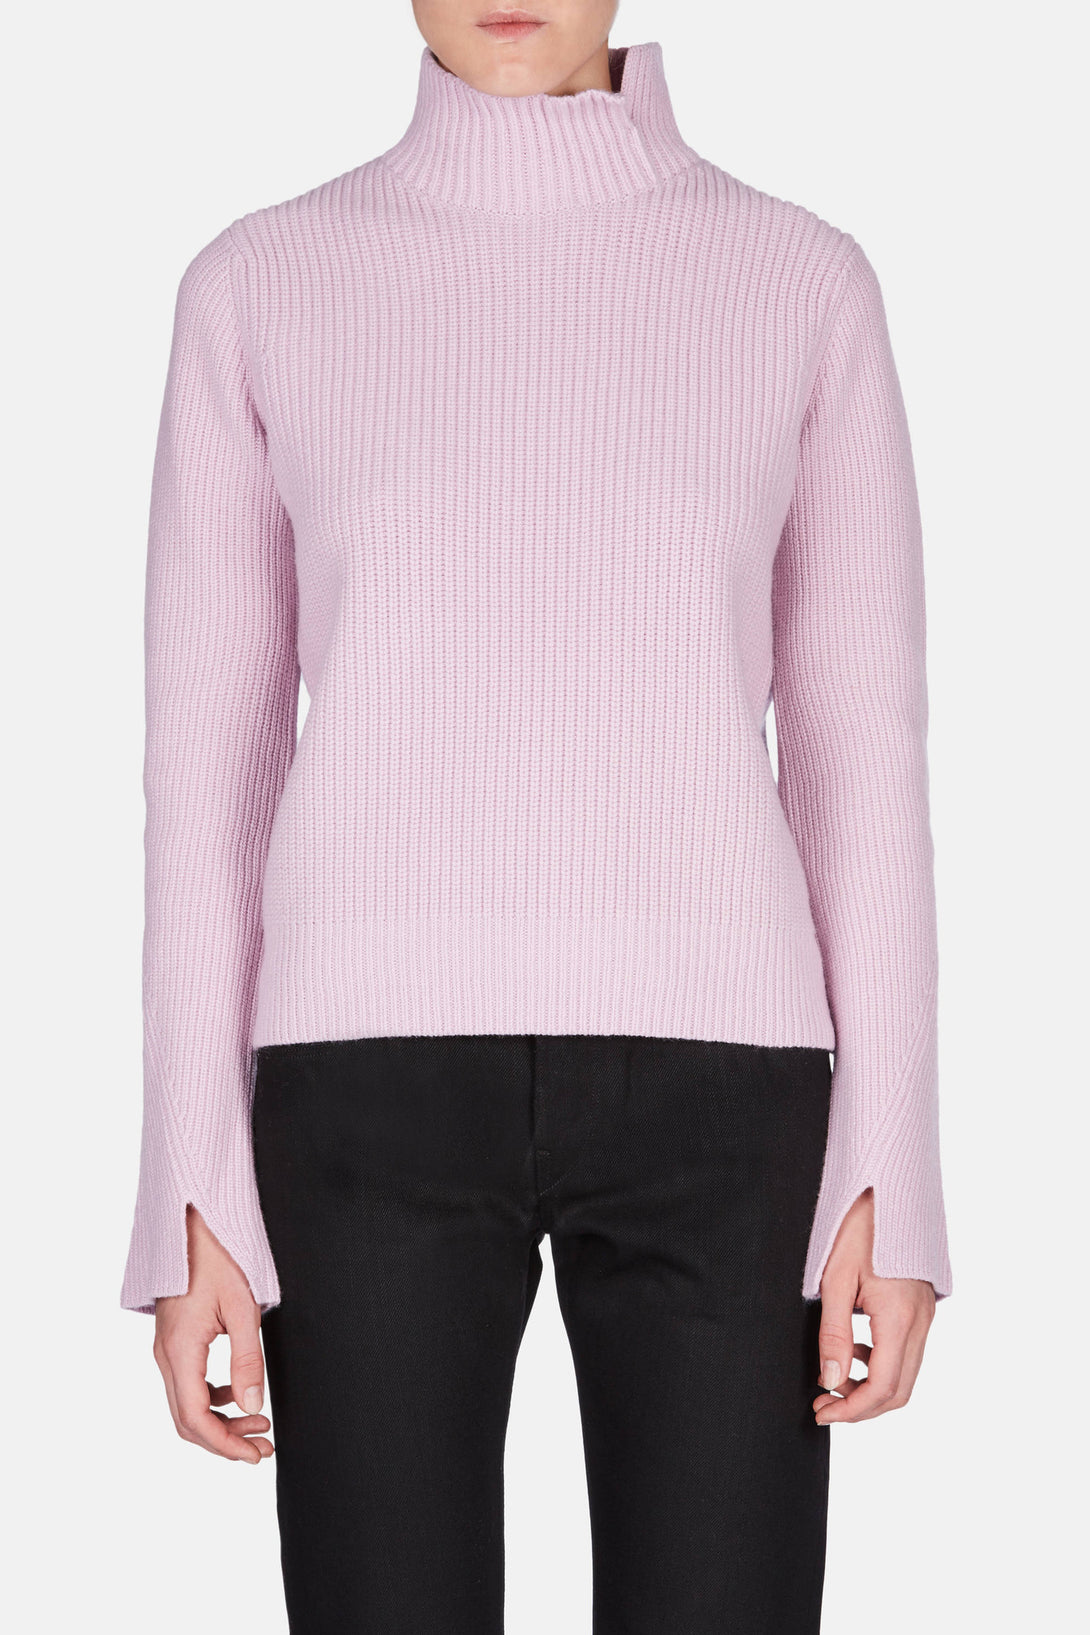 Flared Sleeve Turtleneck - Pink Violet